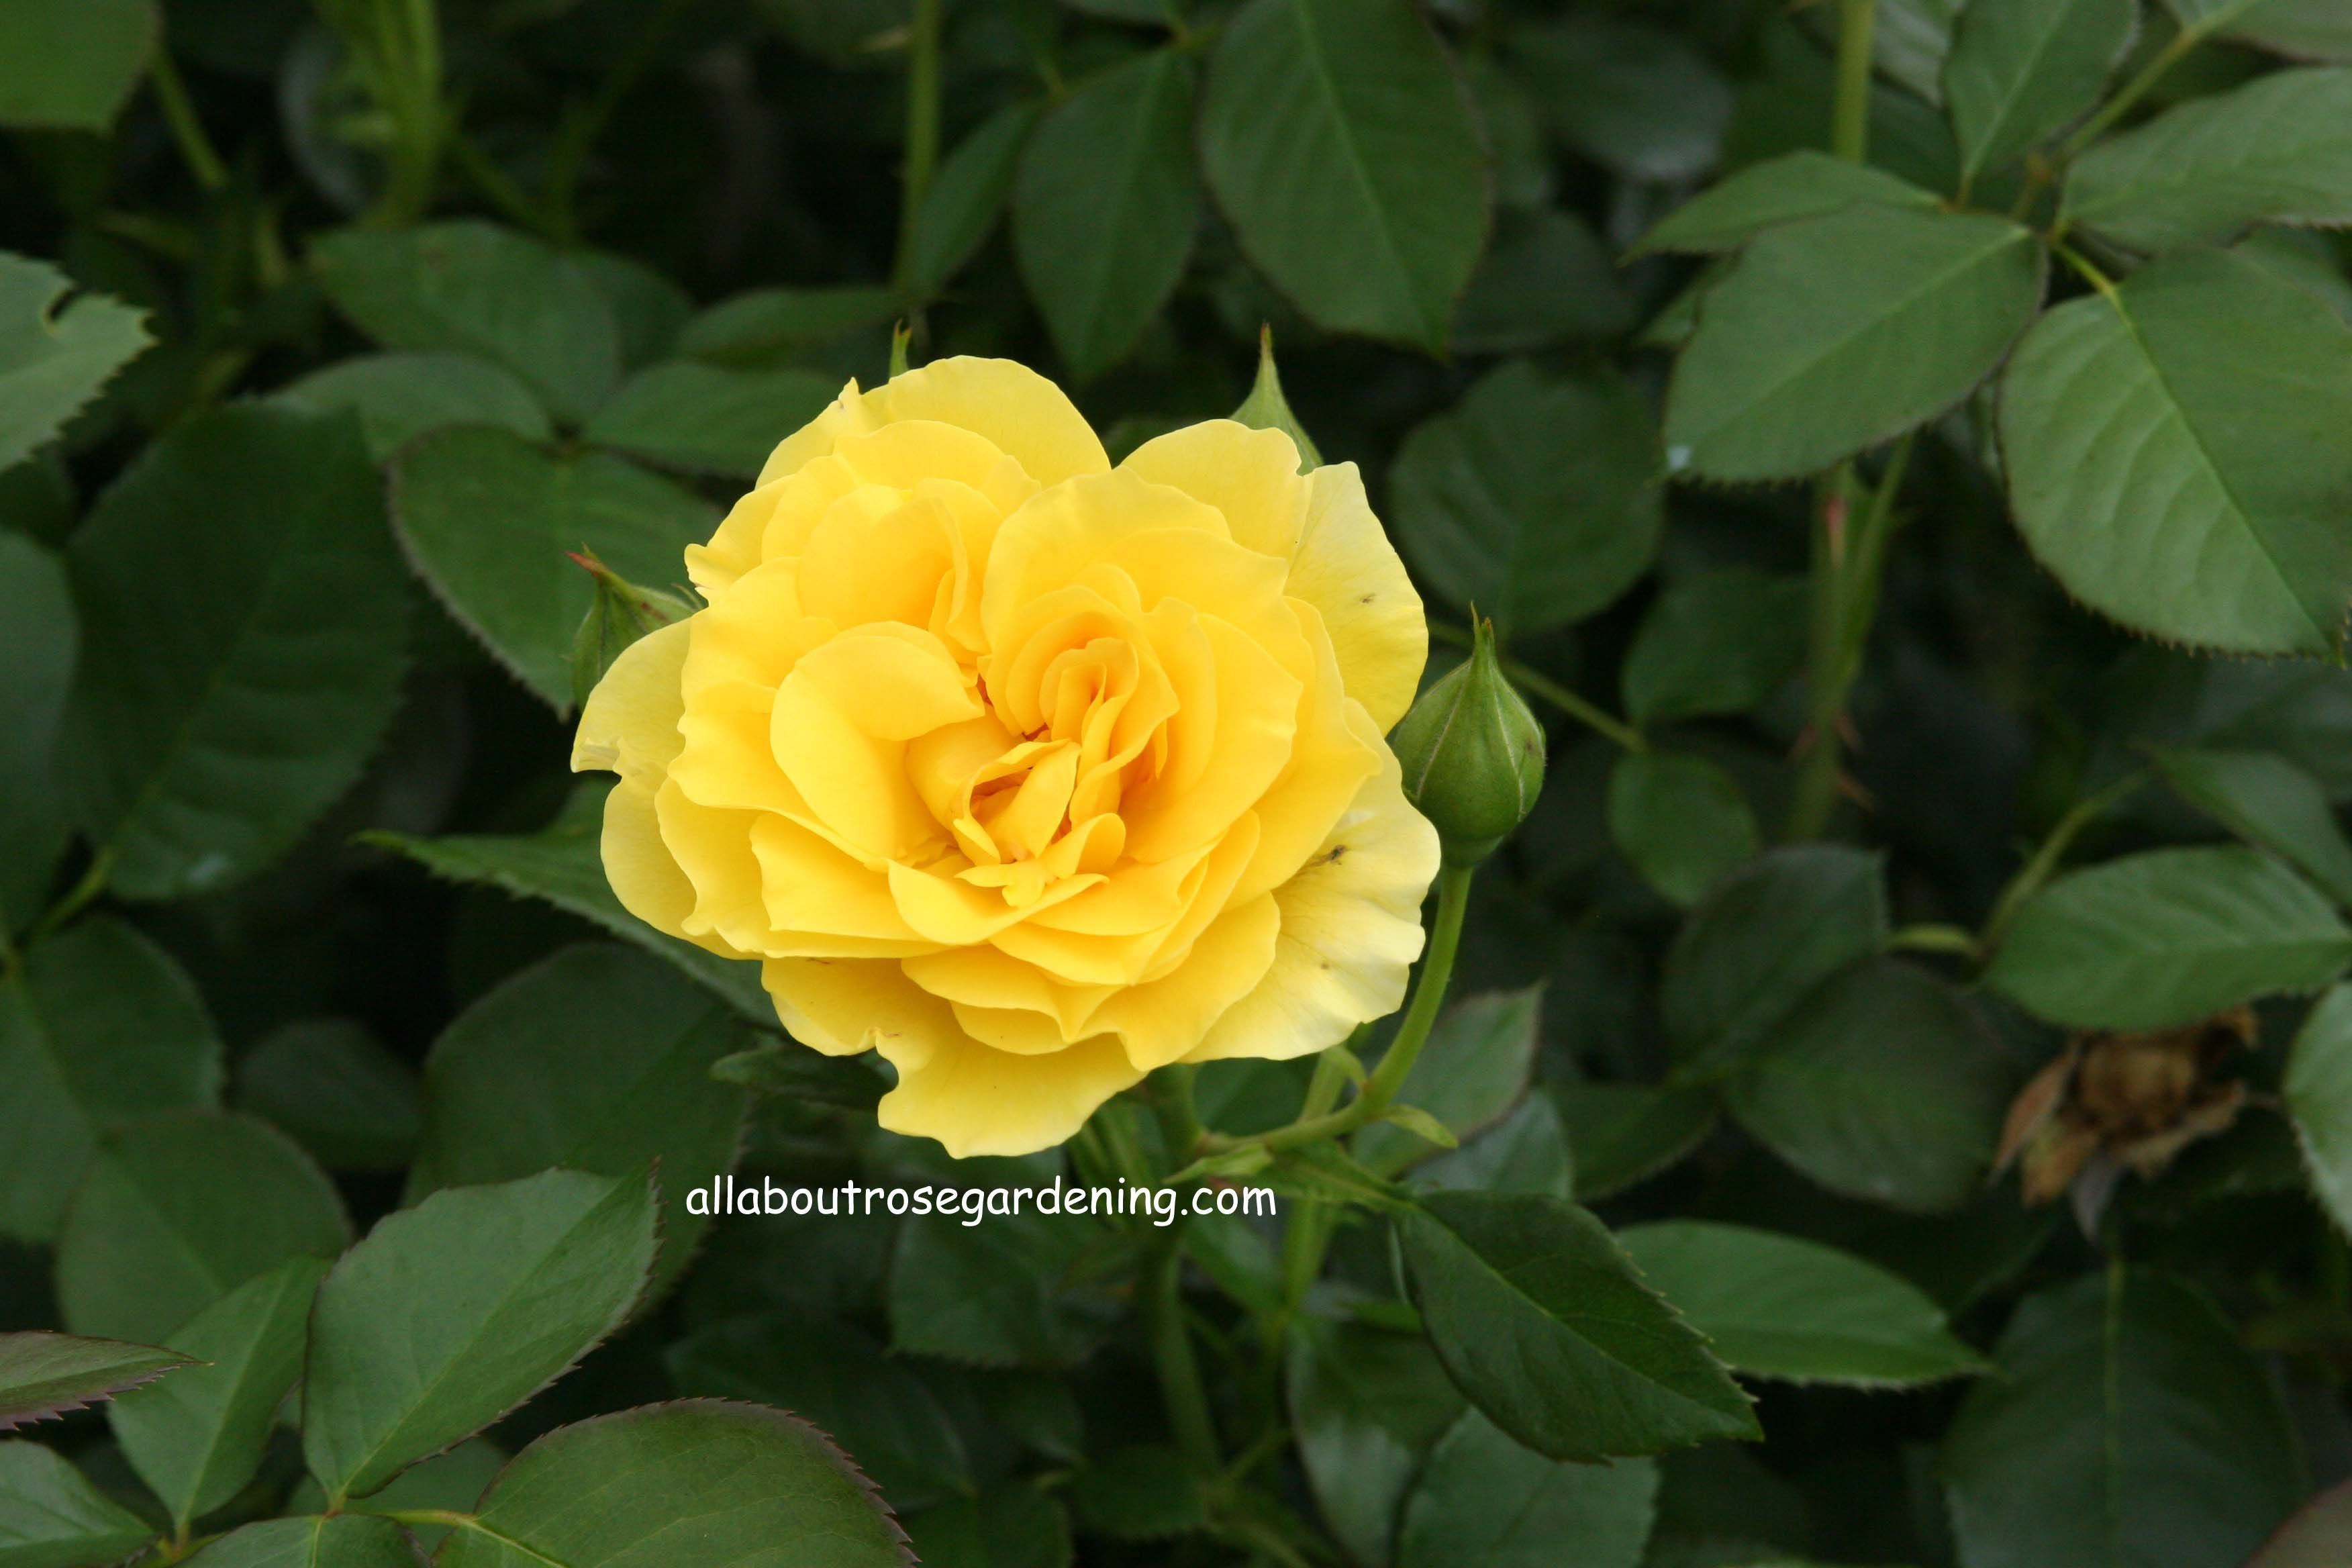 Do You Know The Meaning Of A Yellow Rose The Different Colrs Have